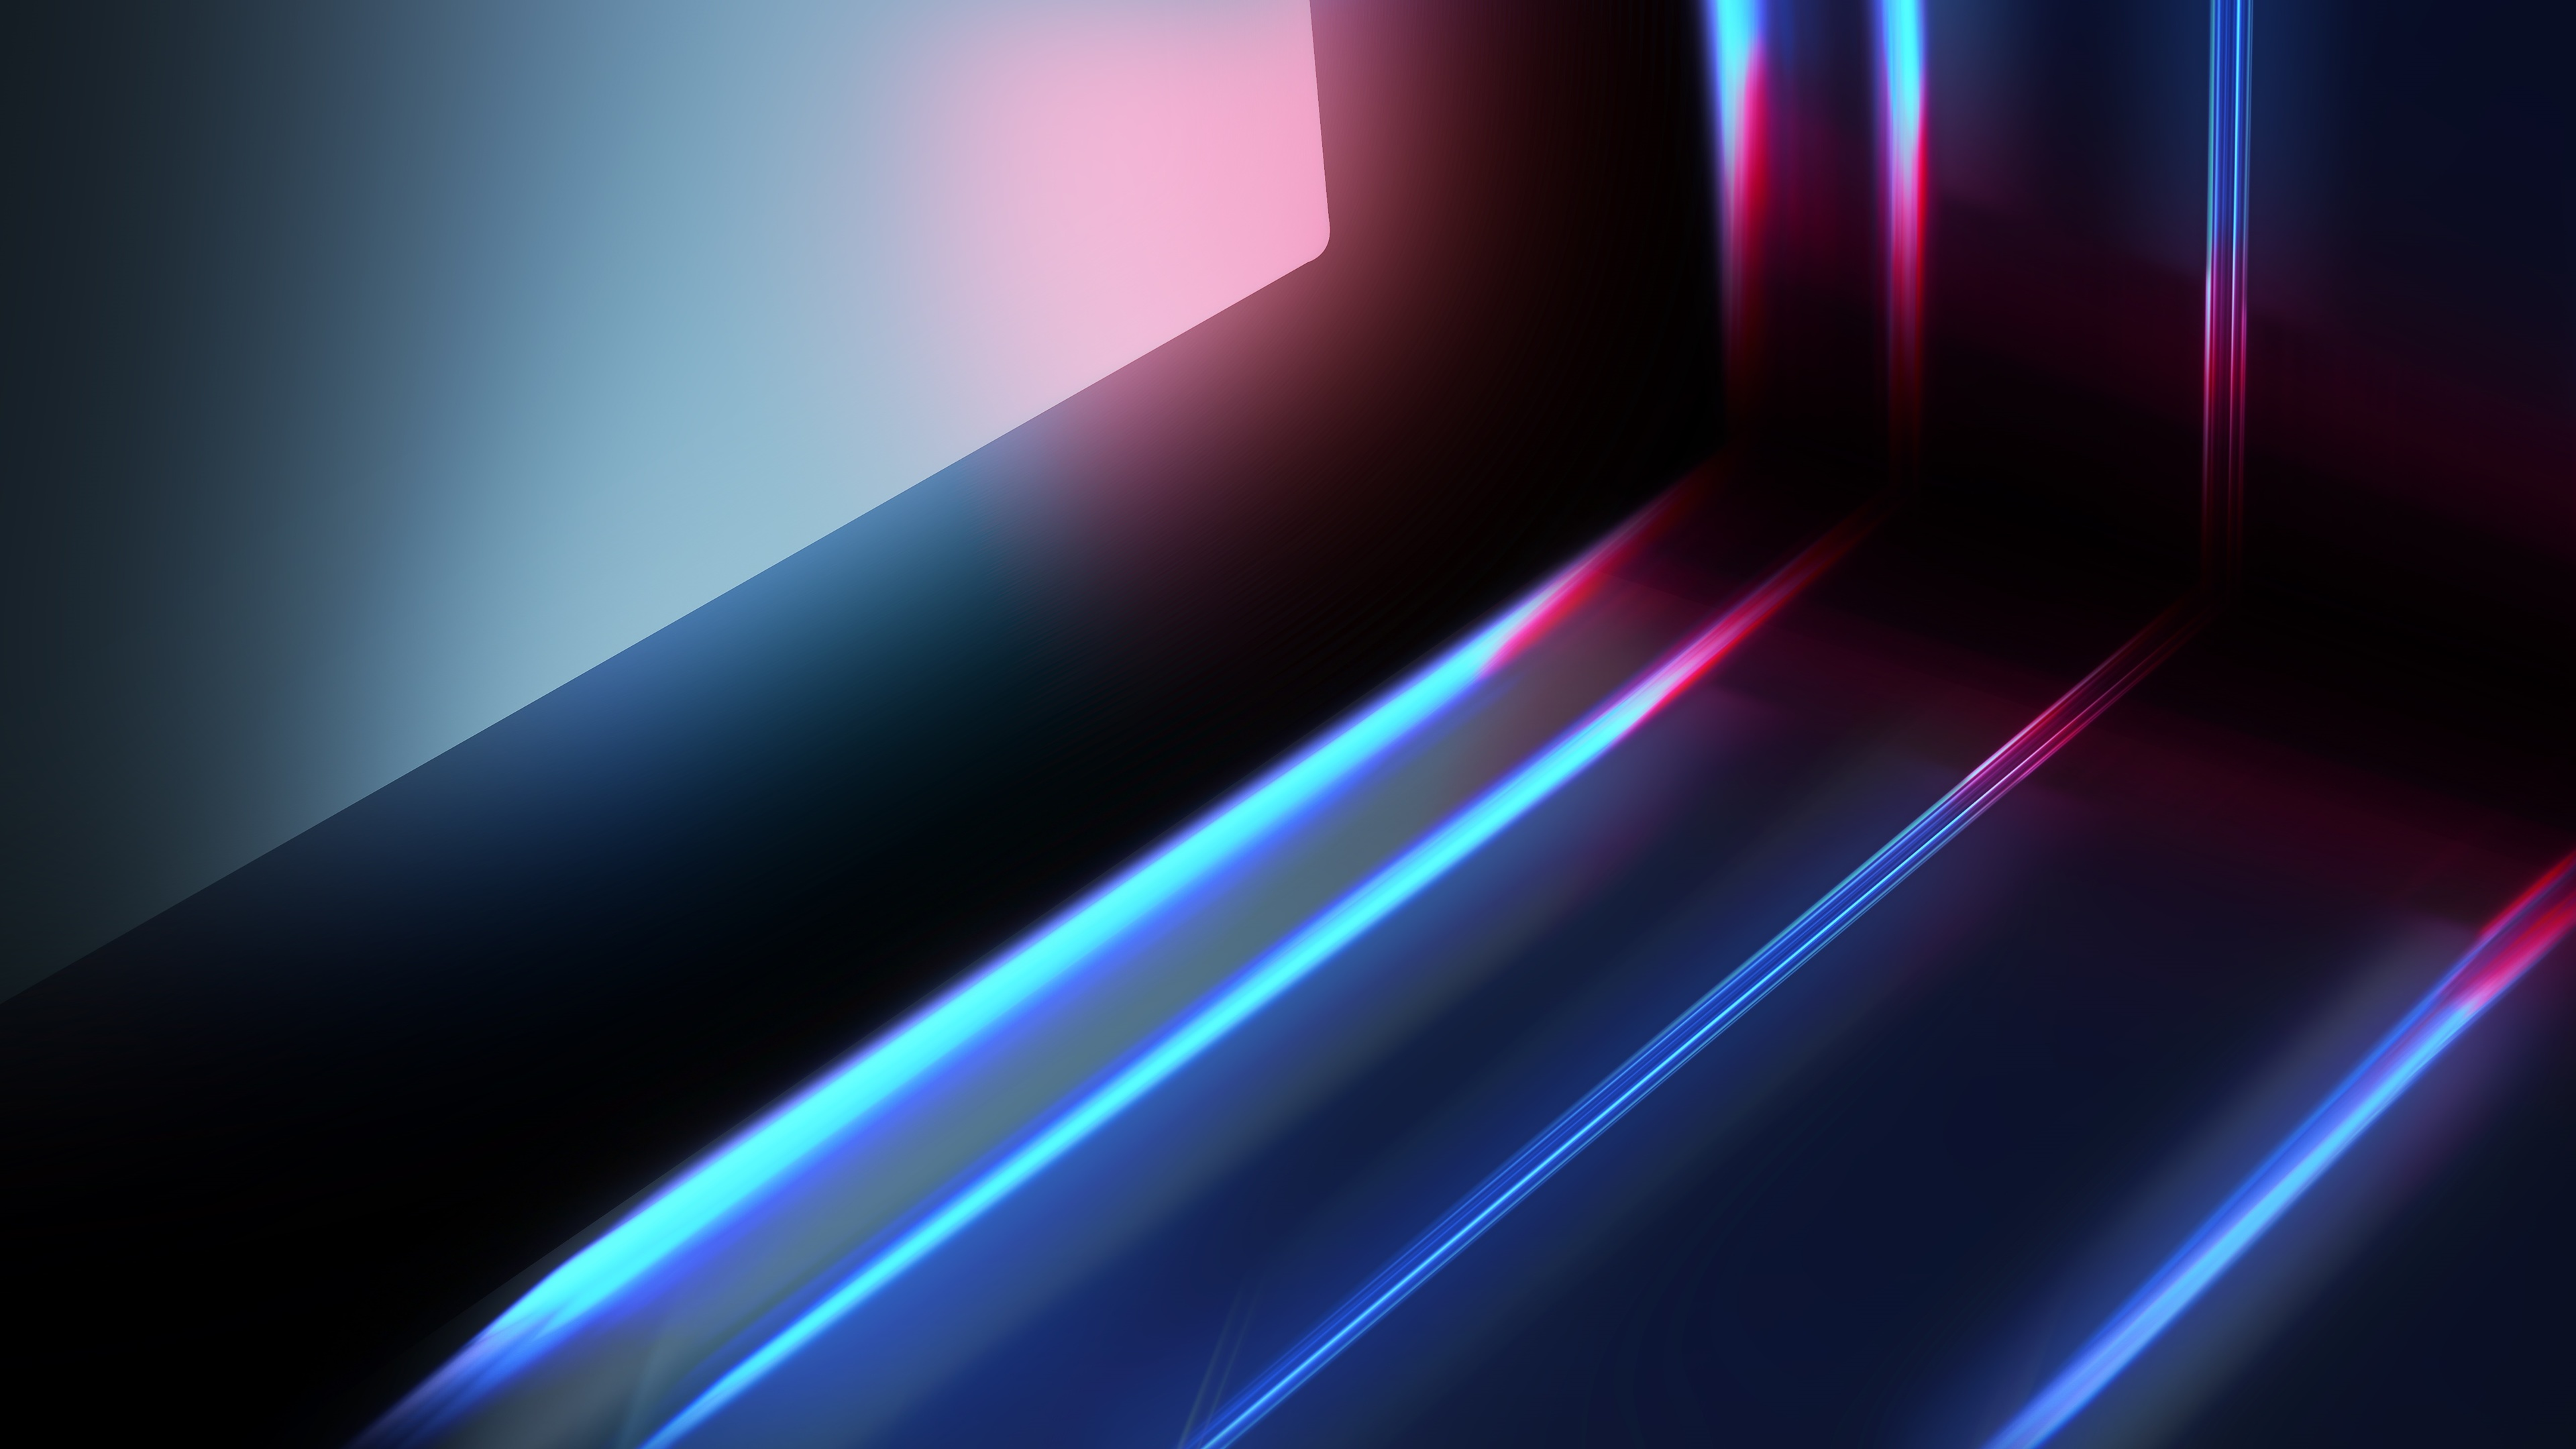 cool synth lines abstract 4k 1555207983 - Cool Synth Lines Abstract 4k - hd-wallpapers, digital art wallpapers, abstract wallpapers, 5k wallpapers, 4k-wallpapers